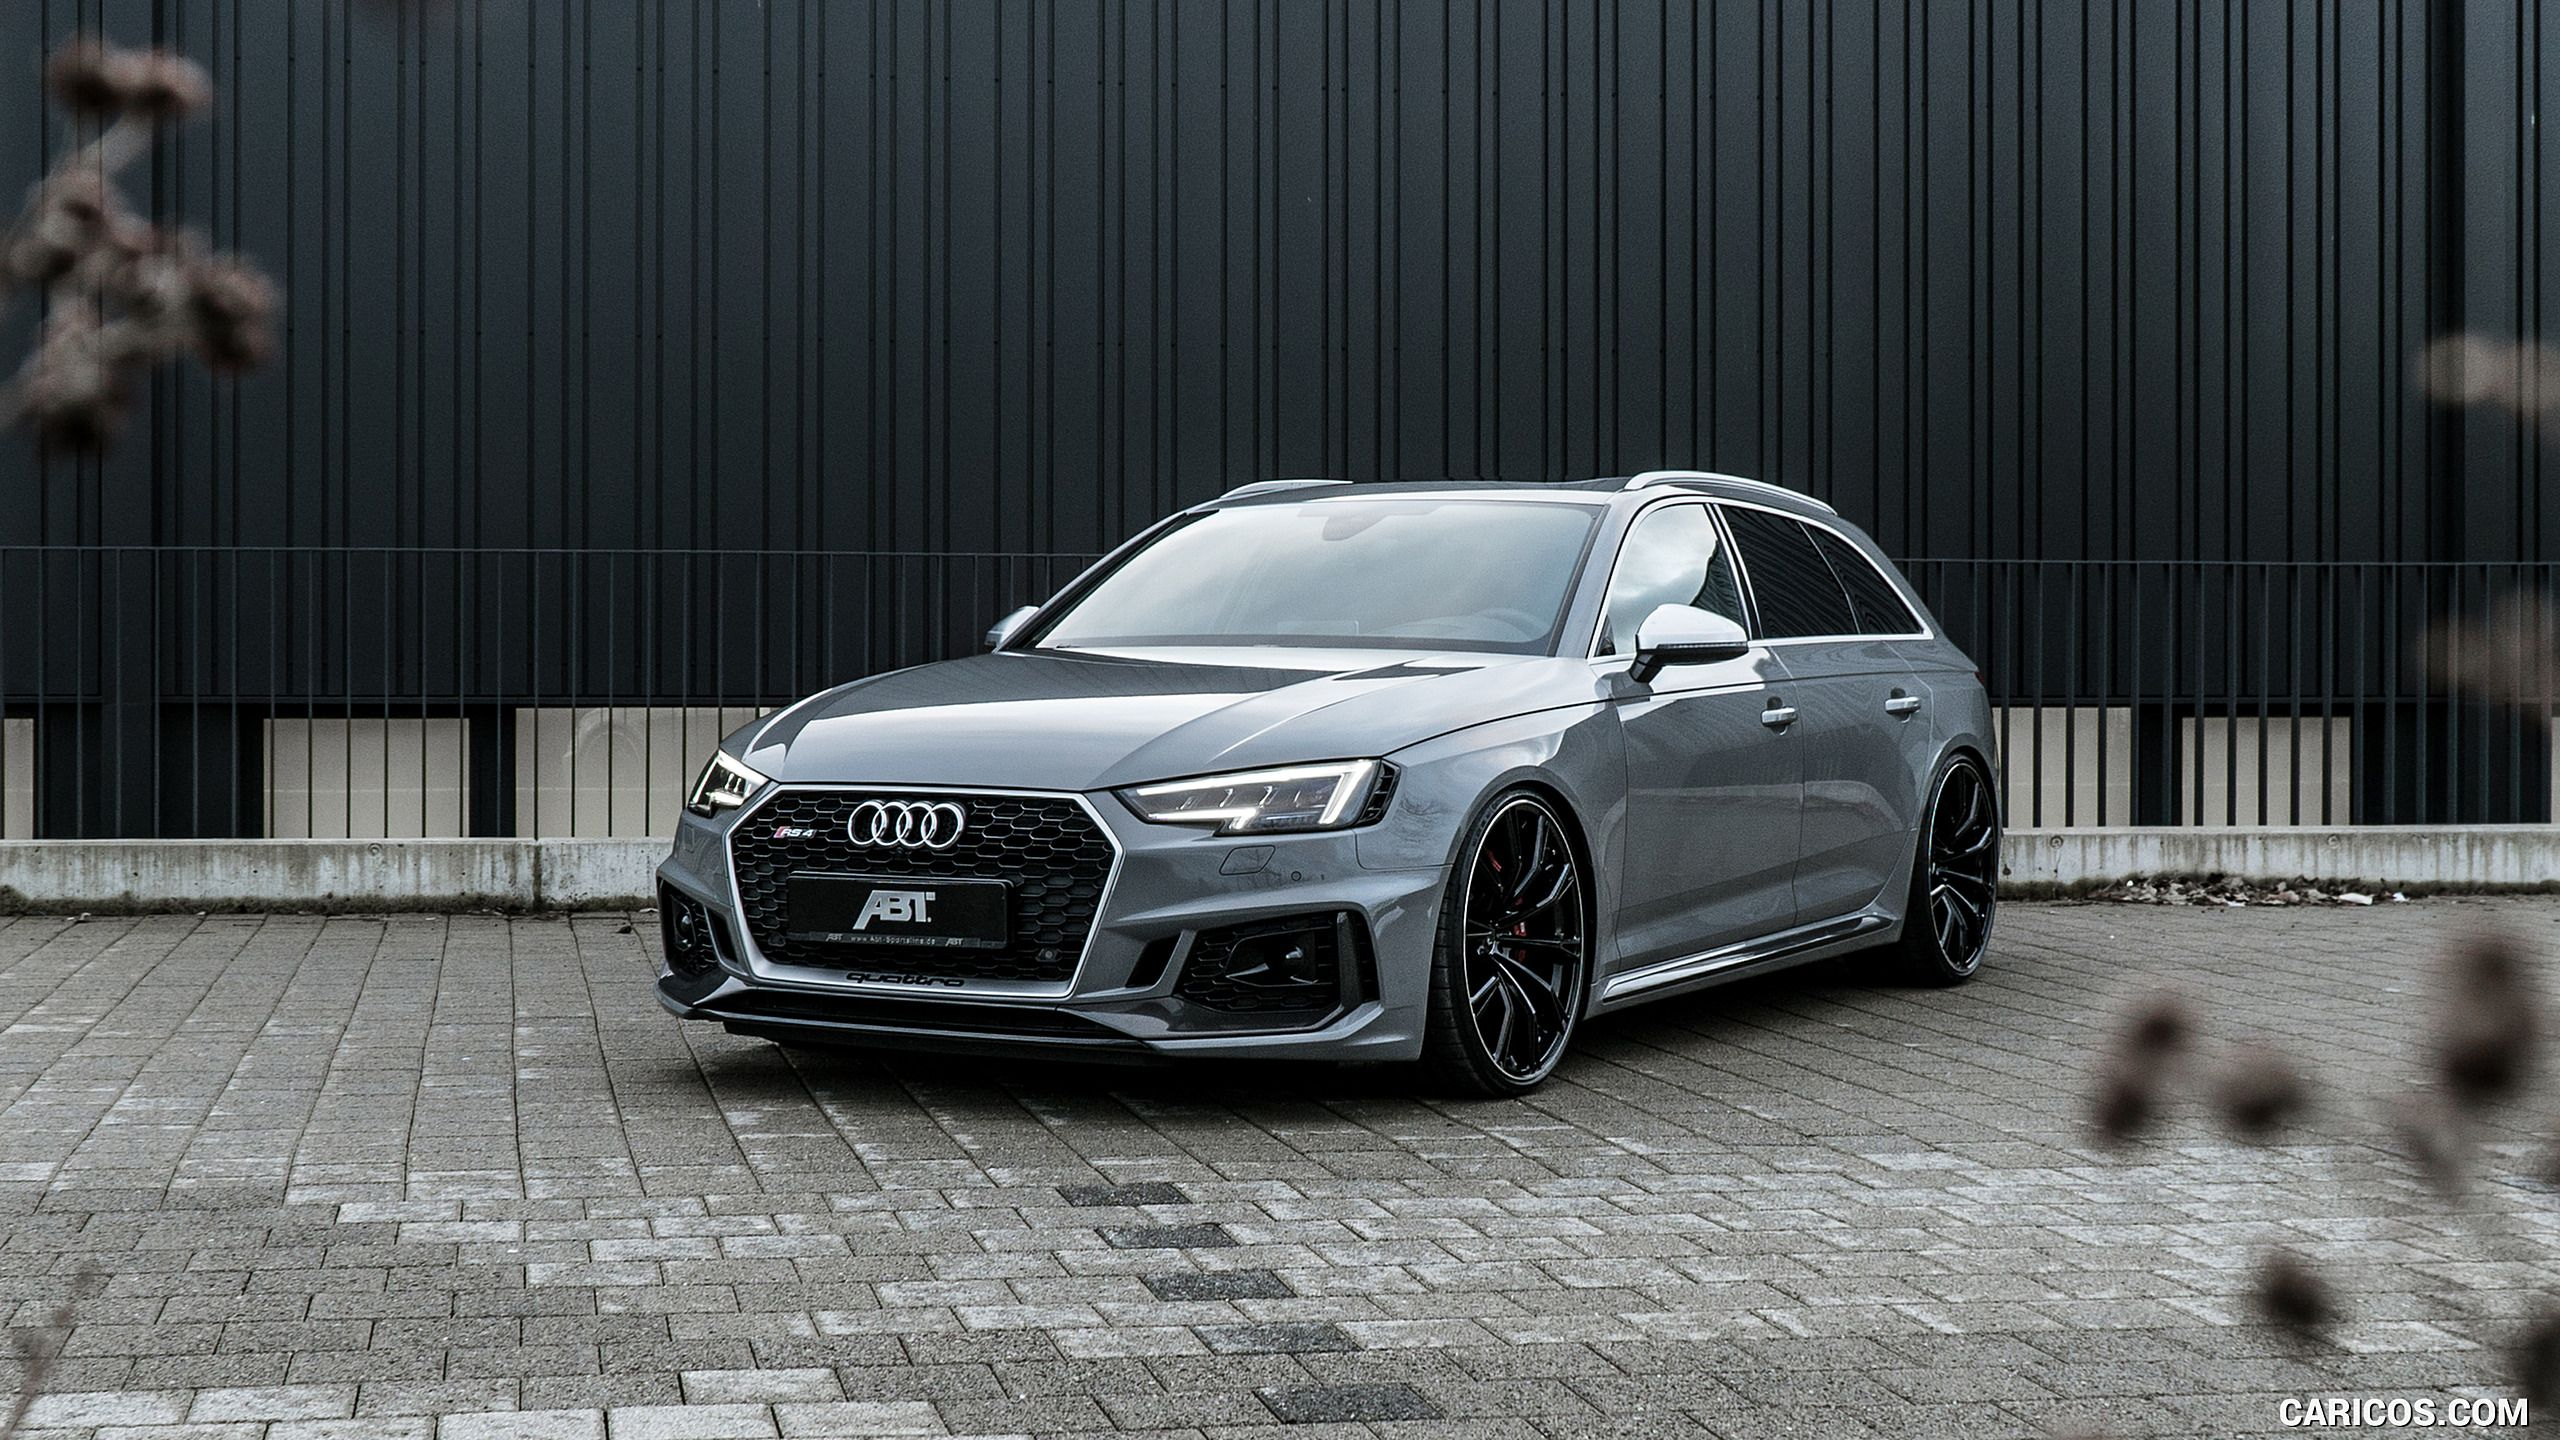 Audi Rs4 Wallpapers Top Free Audi Rs4 Backgrounds